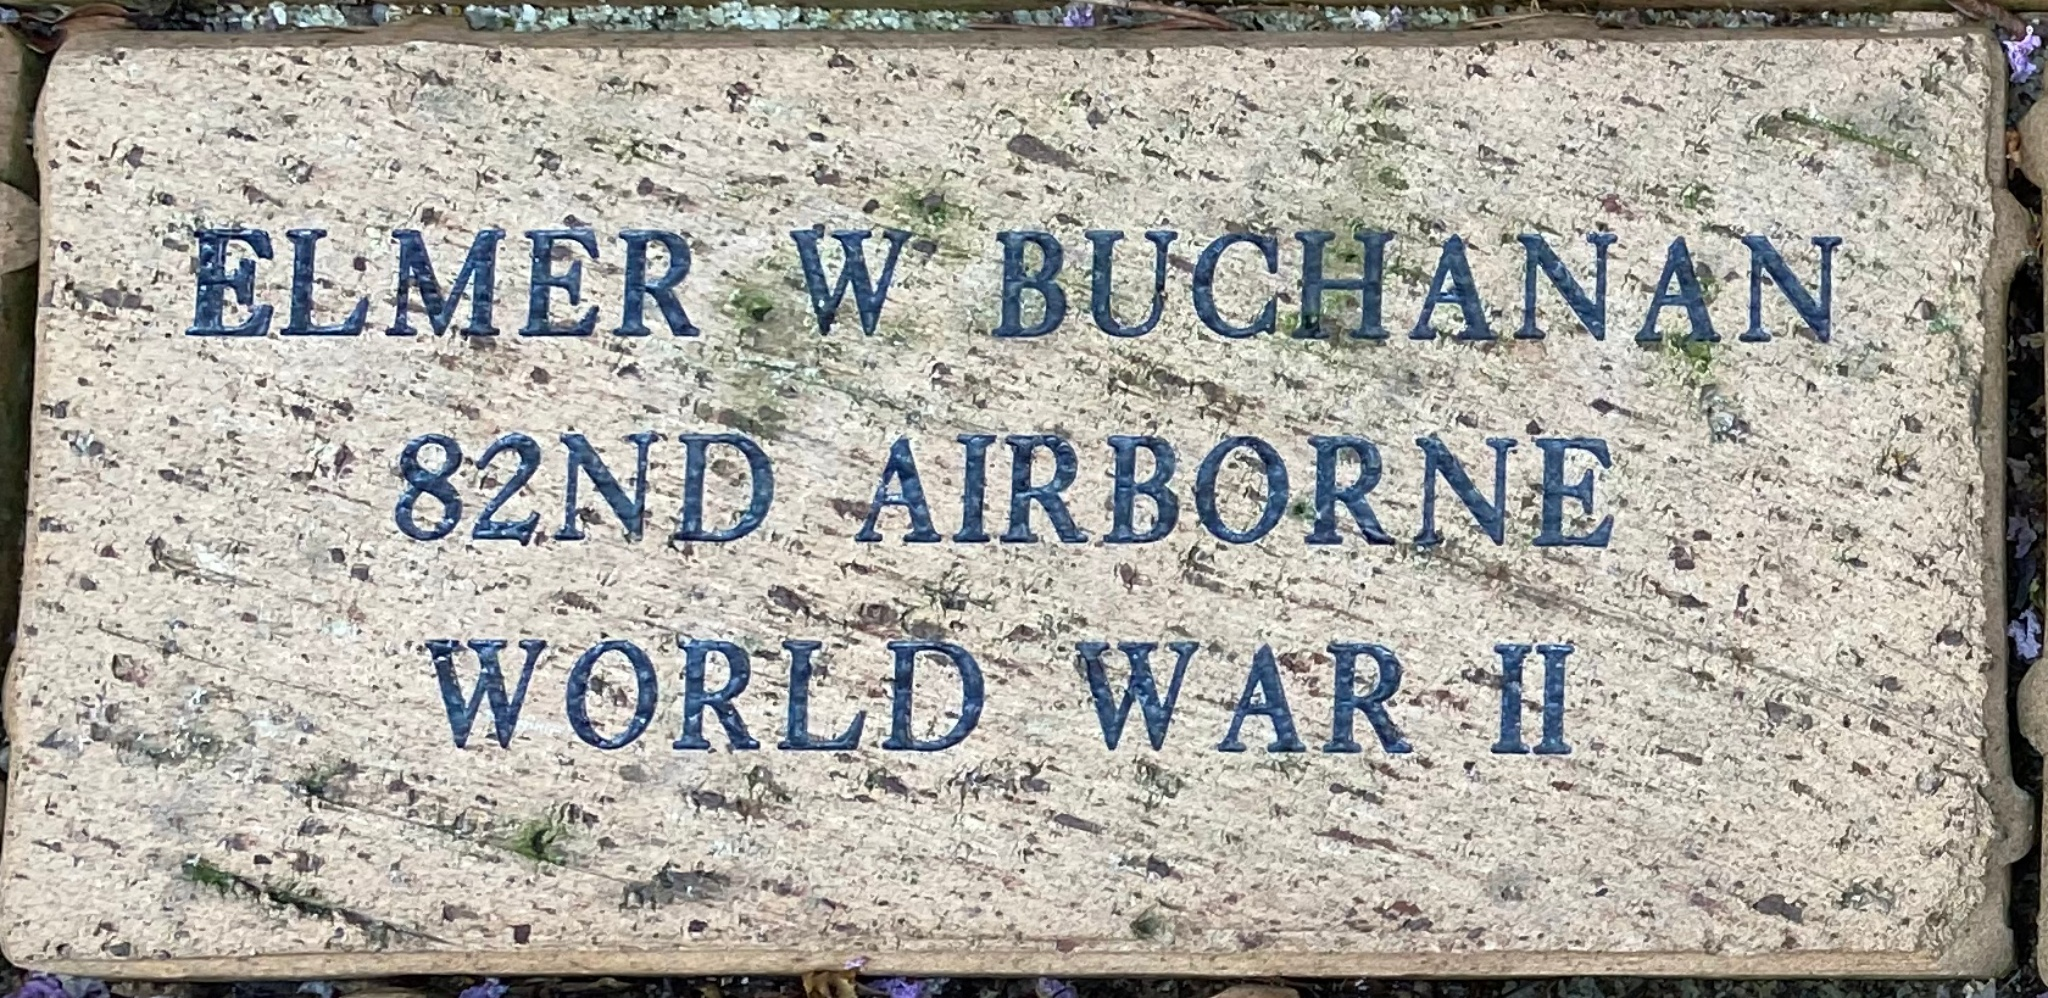 ELMER W. BUCHANAN 82ND AIRBORNE WORLD WAR II